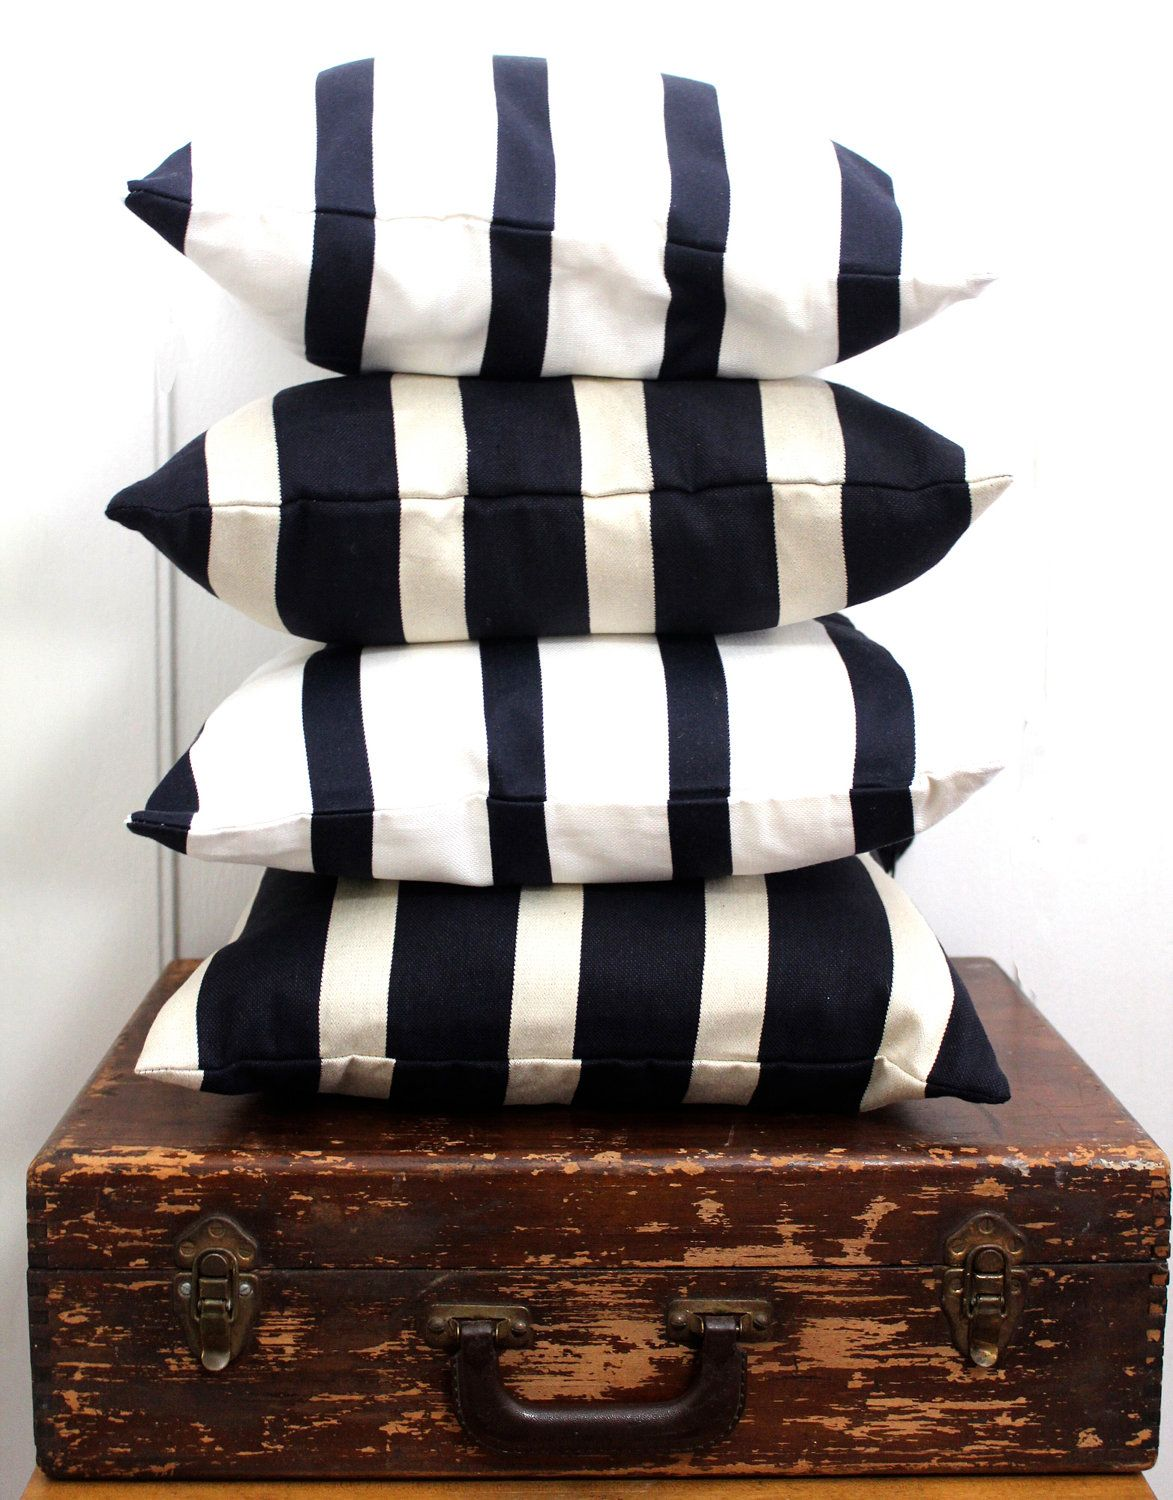 ONE Navy Nautical Pillow Cover Made With Japanese Cotton Linen Fabric - 16 x 16 Inch. $34.00, via Etsy.